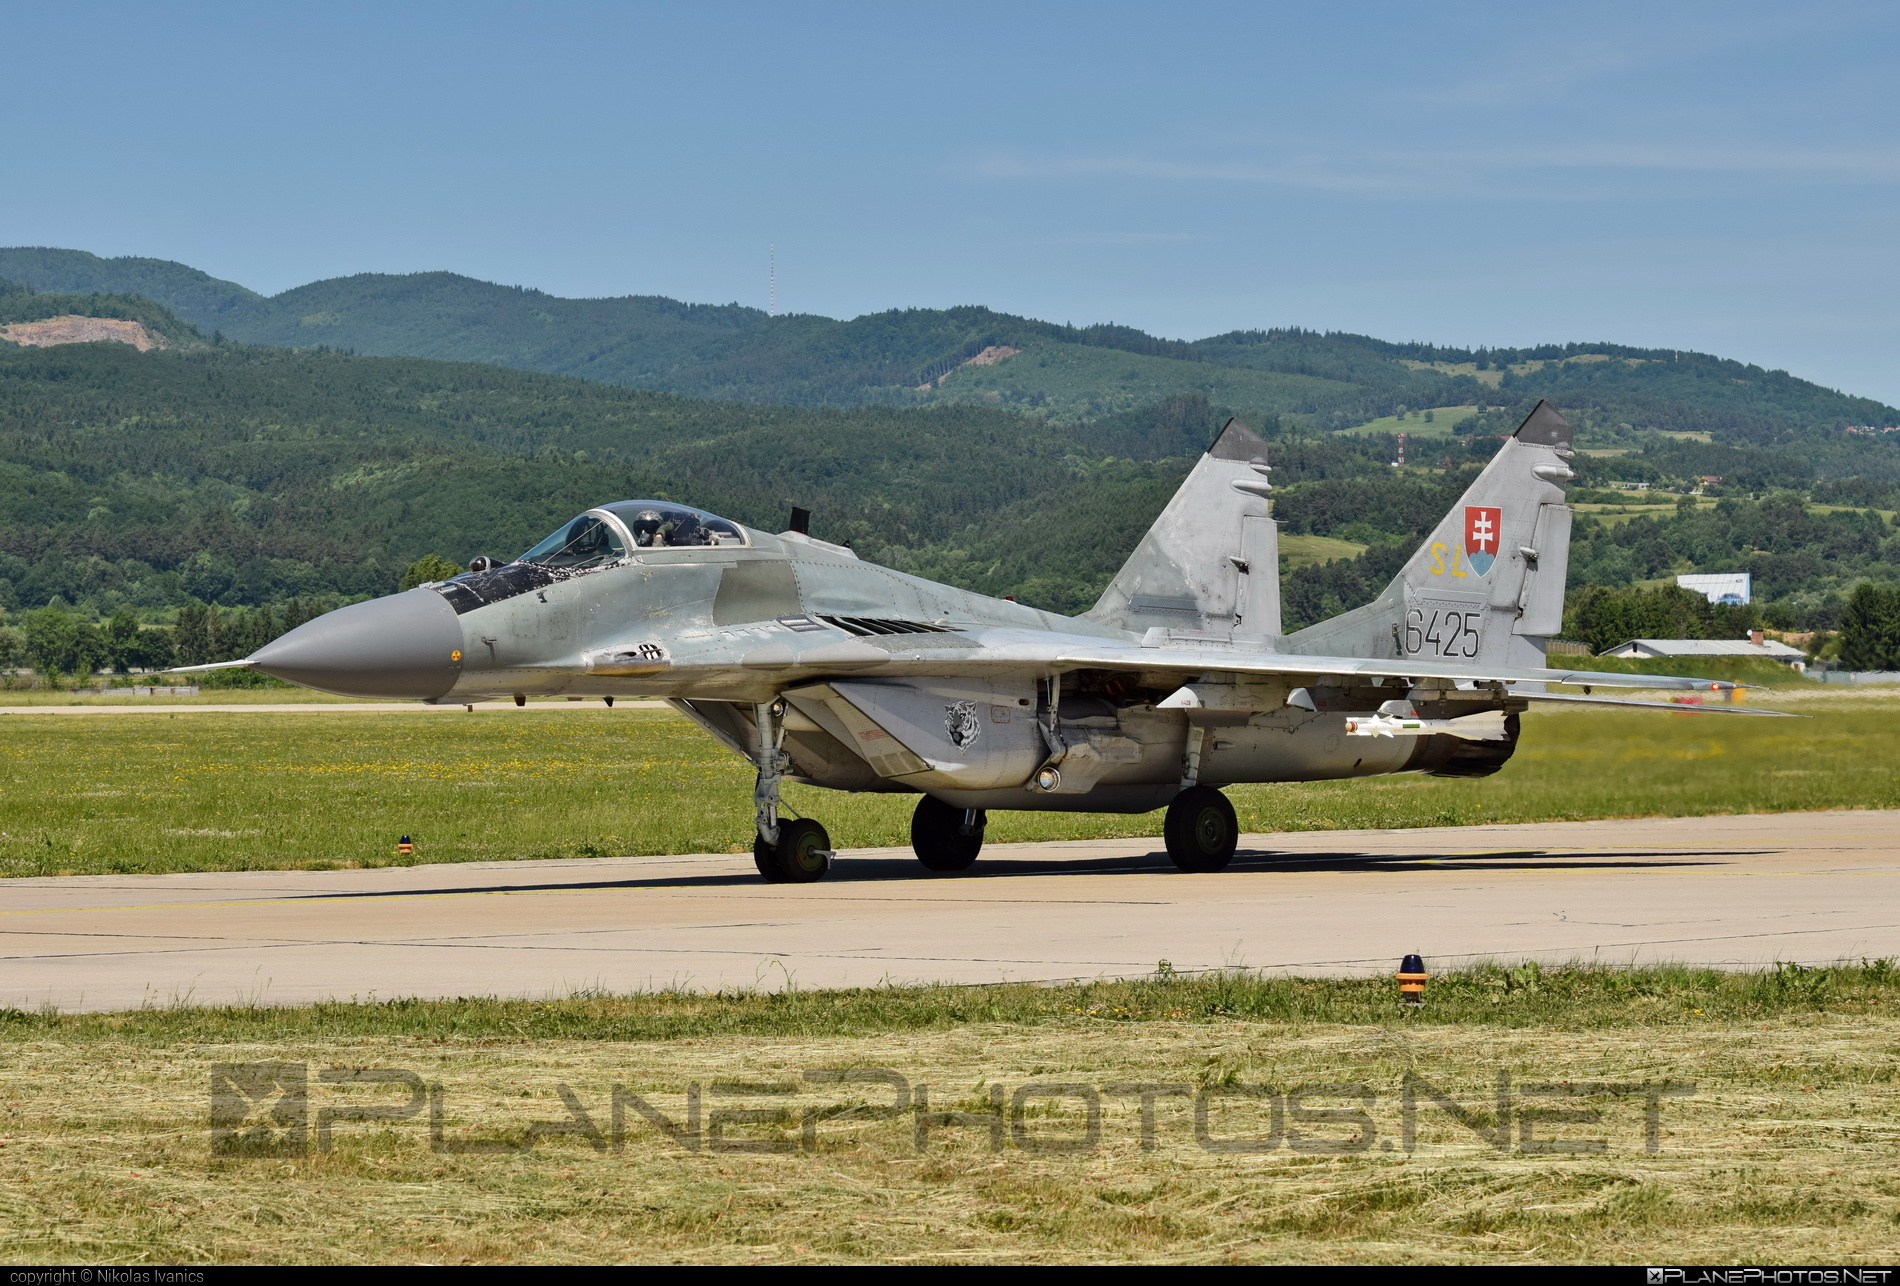 Mikoyan-Gurevich MiG-29AS - 6425 operated by Vzdušné sily OS SR (Slovak Air Force) #mig #mig29 #mig29as #mikoyangurevich #slovakairforce #vzdusnesilyossr